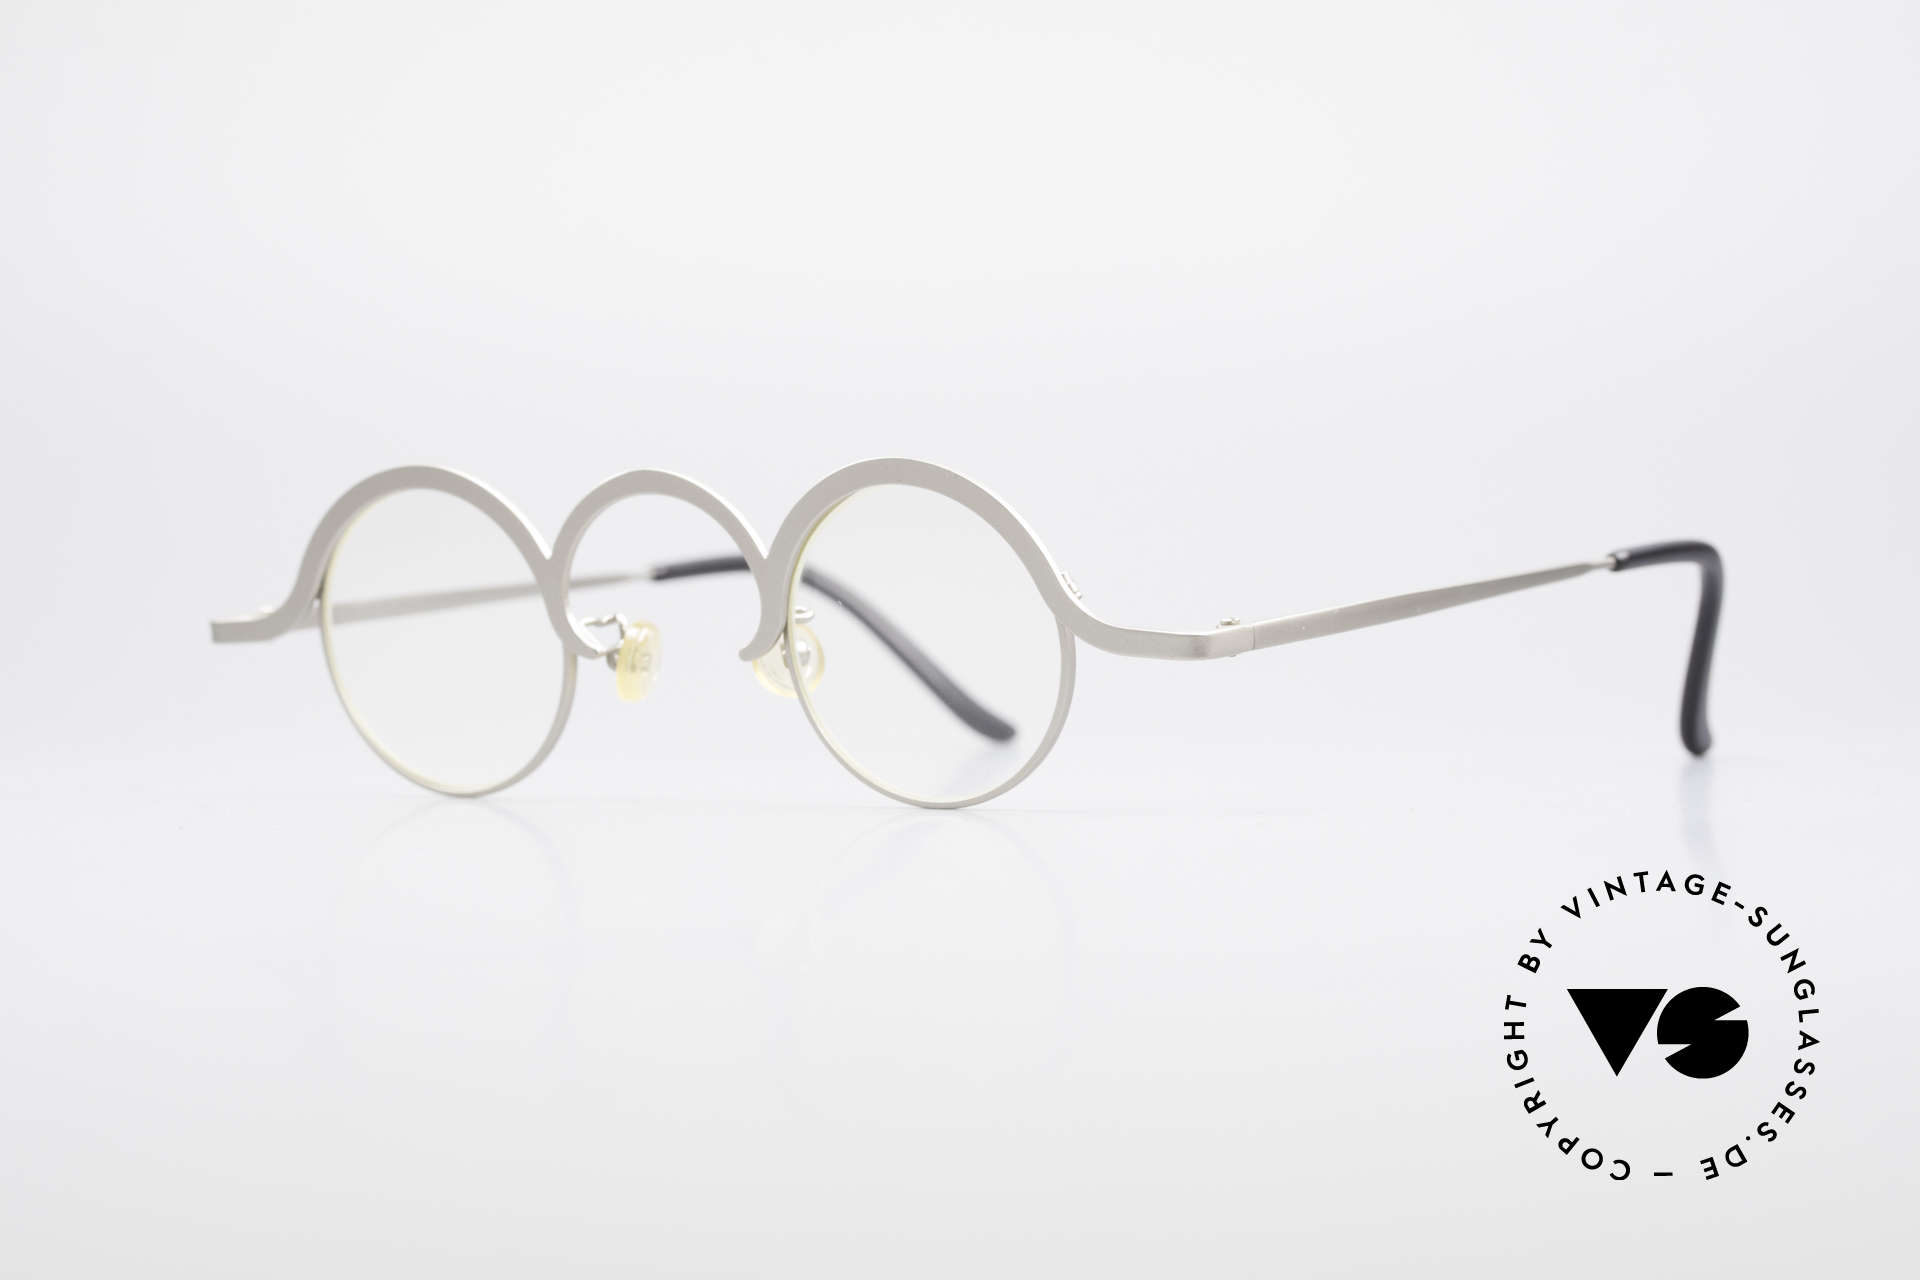 Theo Belgium Jeu Avant-Garde Vintage Specs, made for the avant-garde, individualists & trend-setters, Made for Men and Women